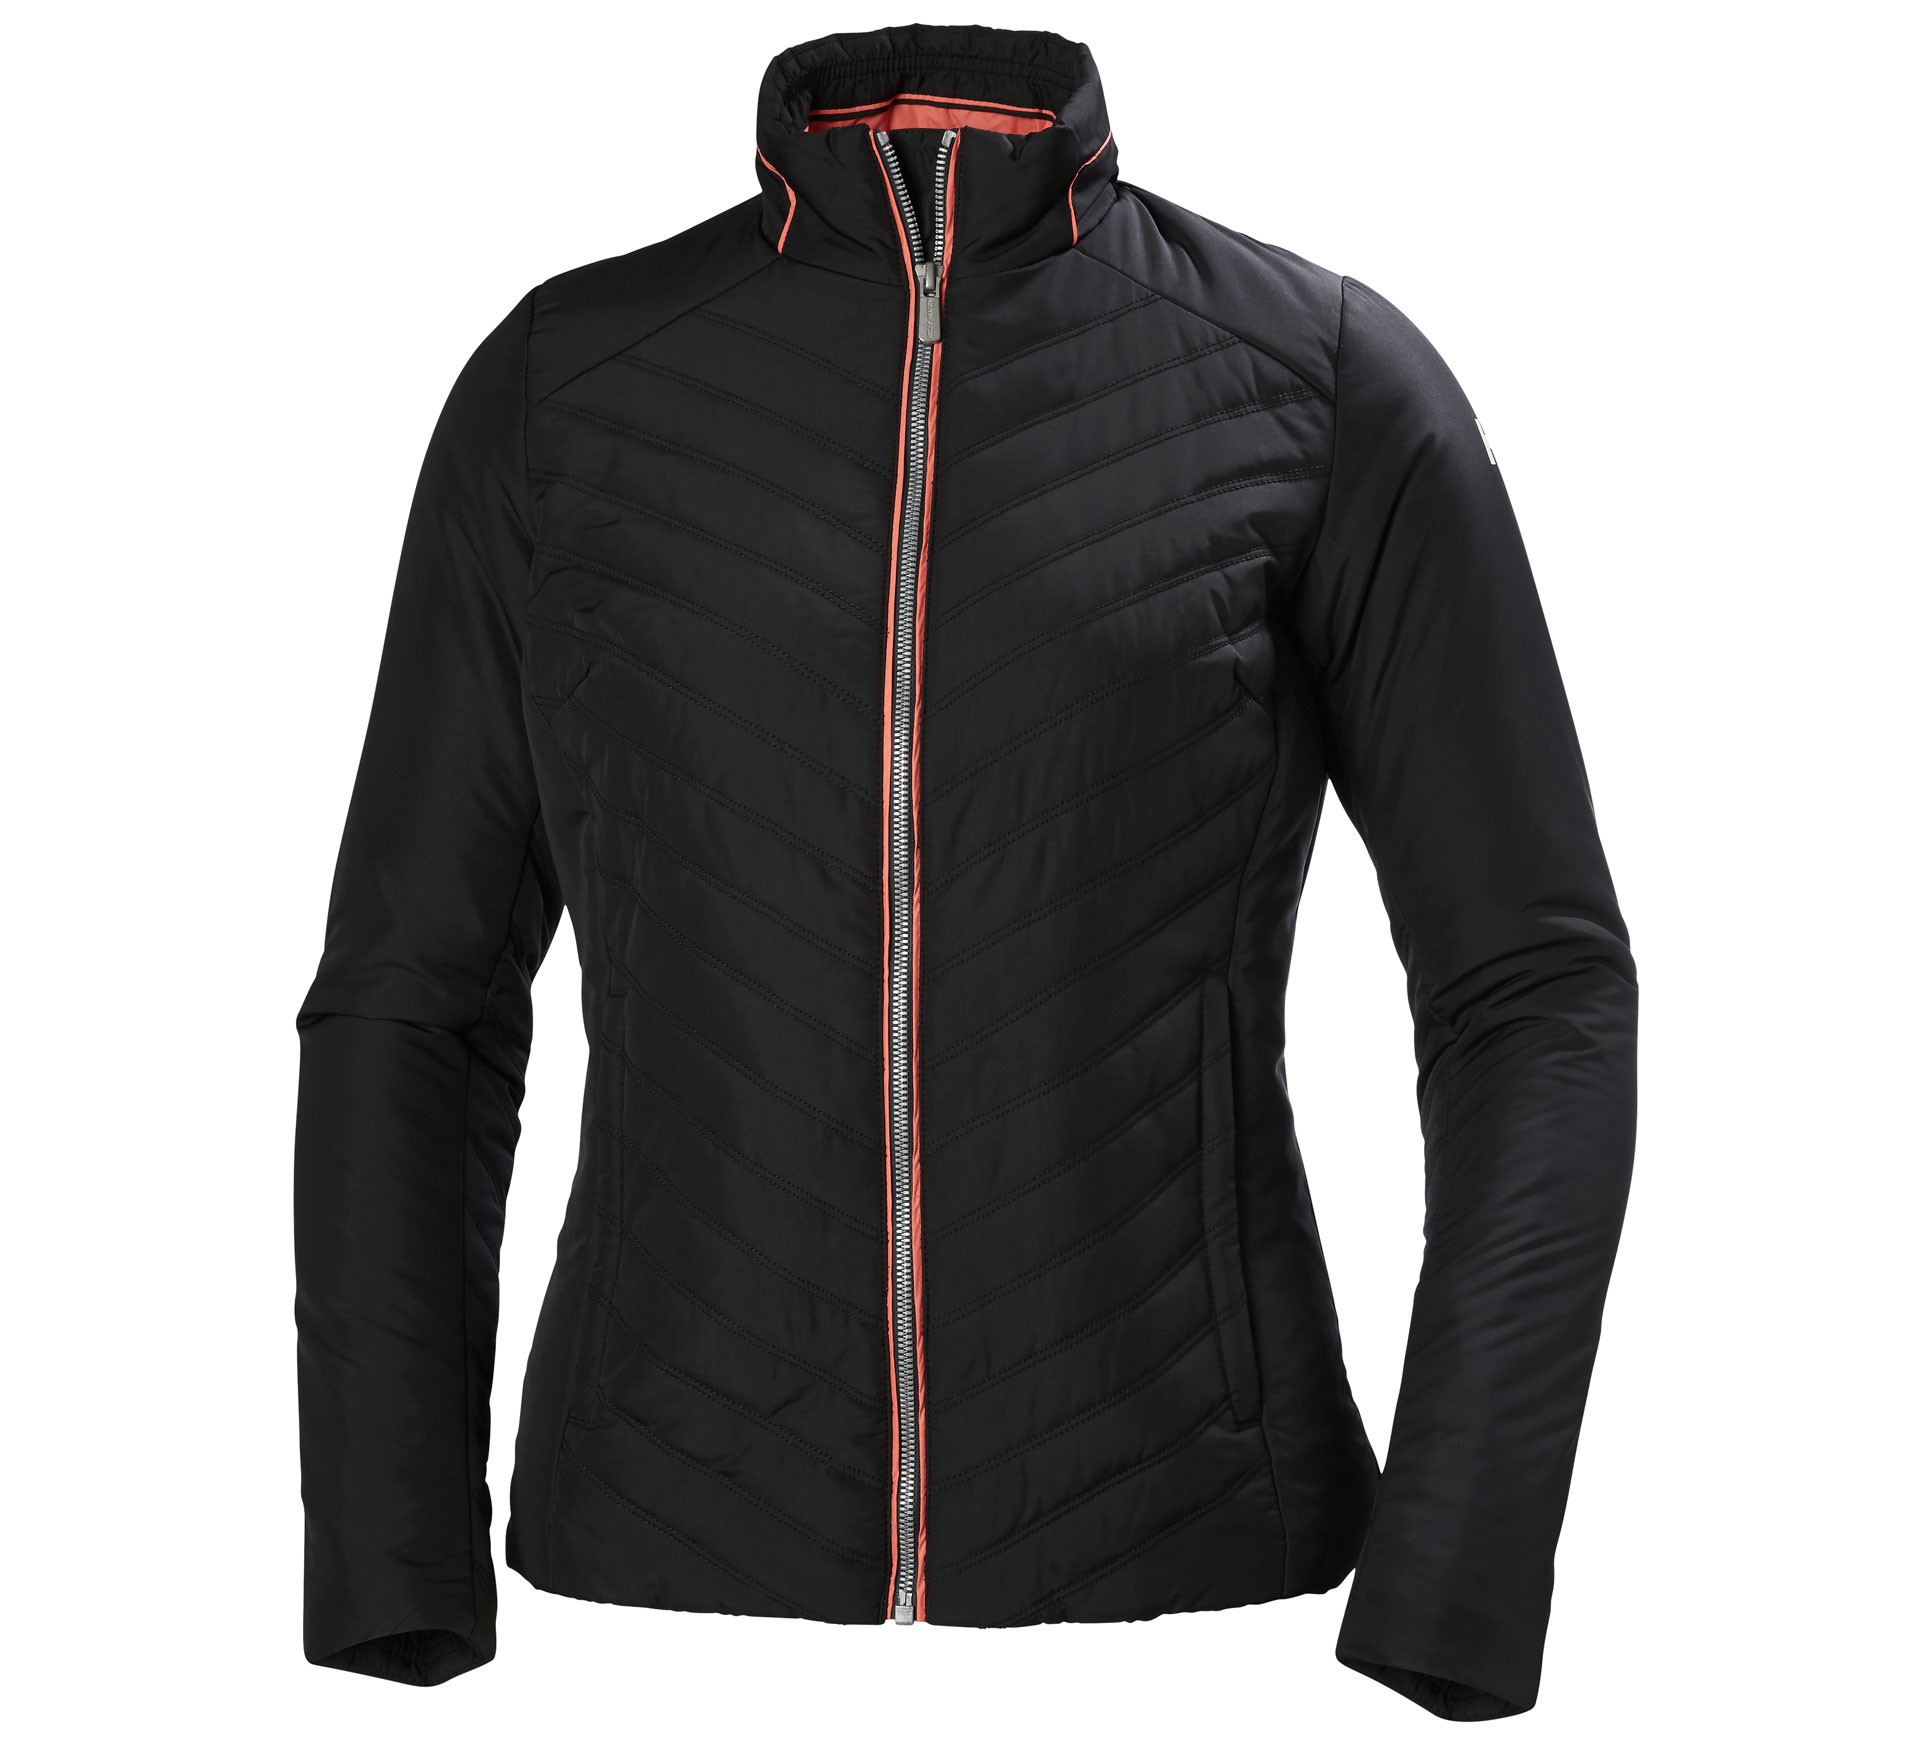 Bunda - W CREW INSULATOR JACKET